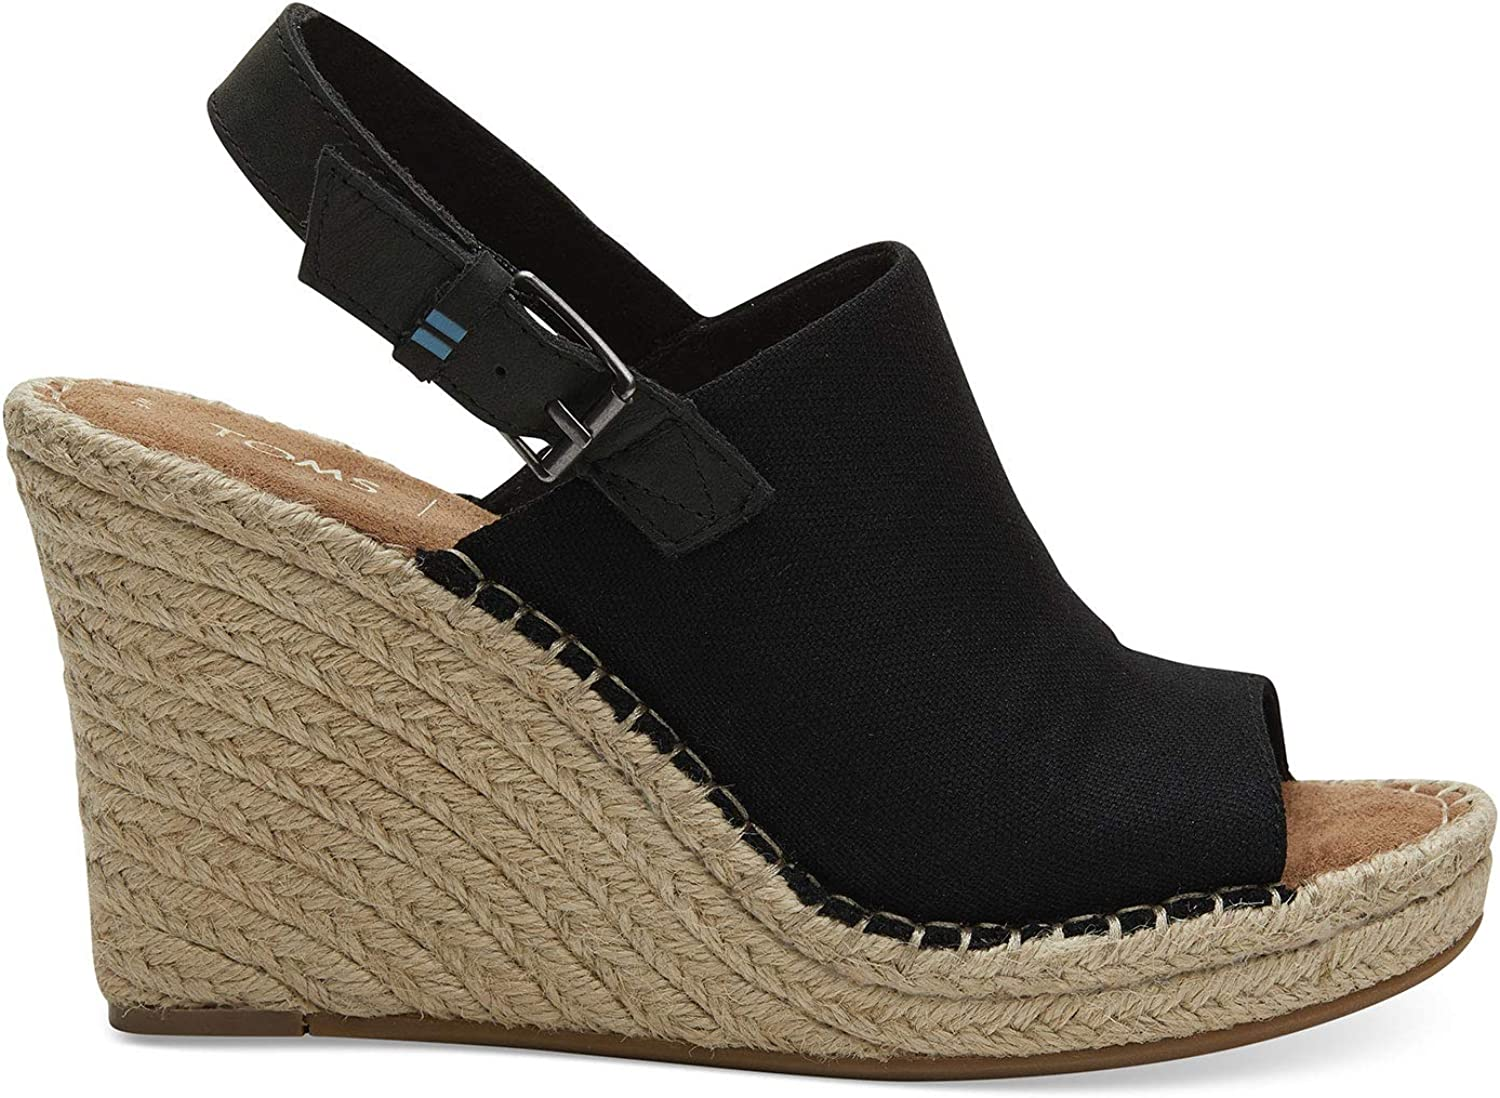 TOMS Women's Low-Top Sneakers